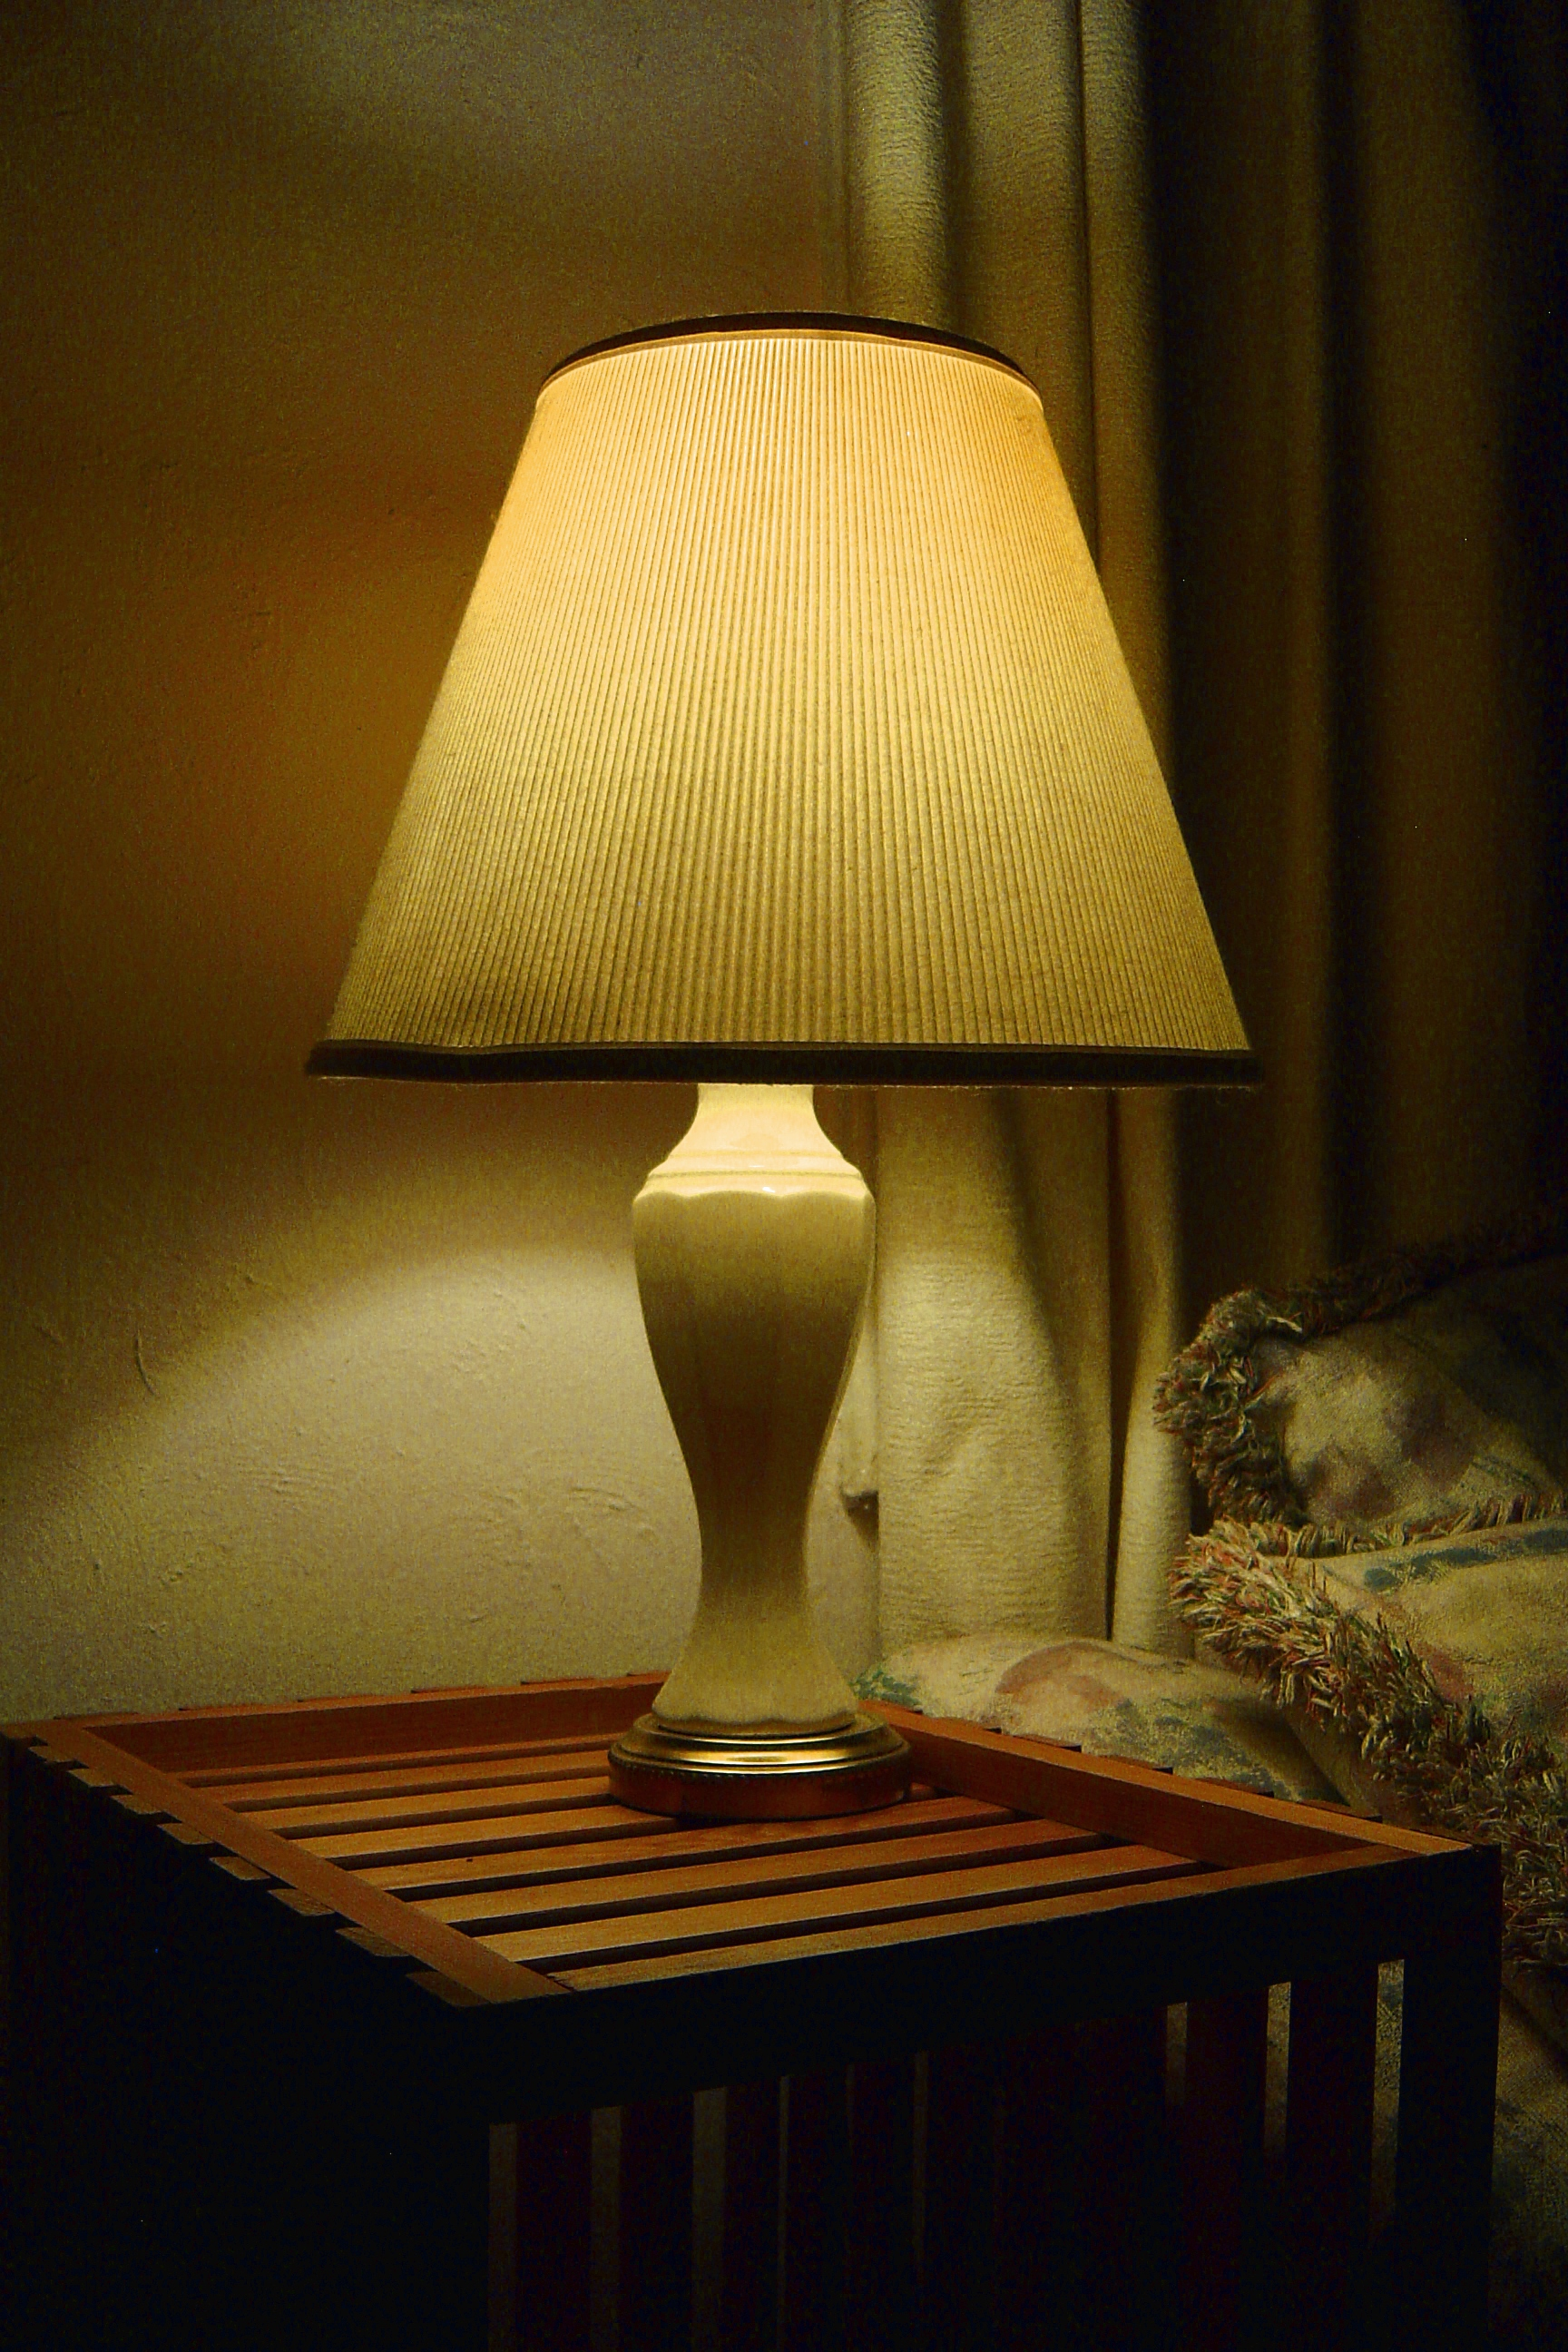 Living room lamp picture free photograph photos public Living room lamp